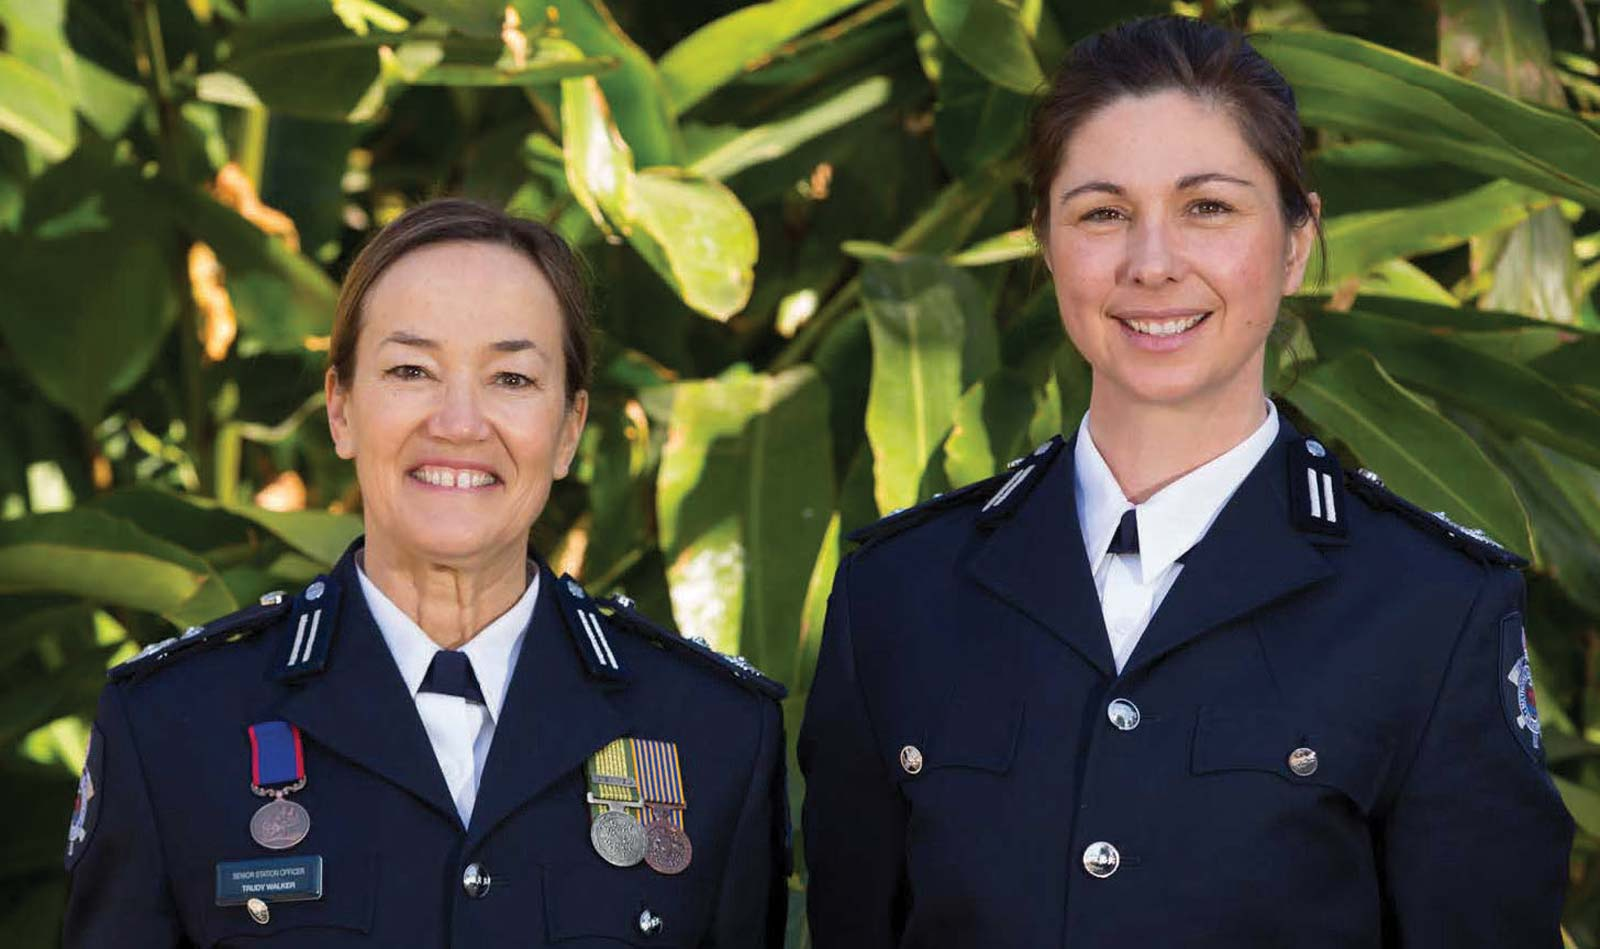 On Friday 14 September 2018, Trudy Walker and Donna Wheatley became the highest-ranking female firefighters at MFB when they successfully completed the Commander Development Program.